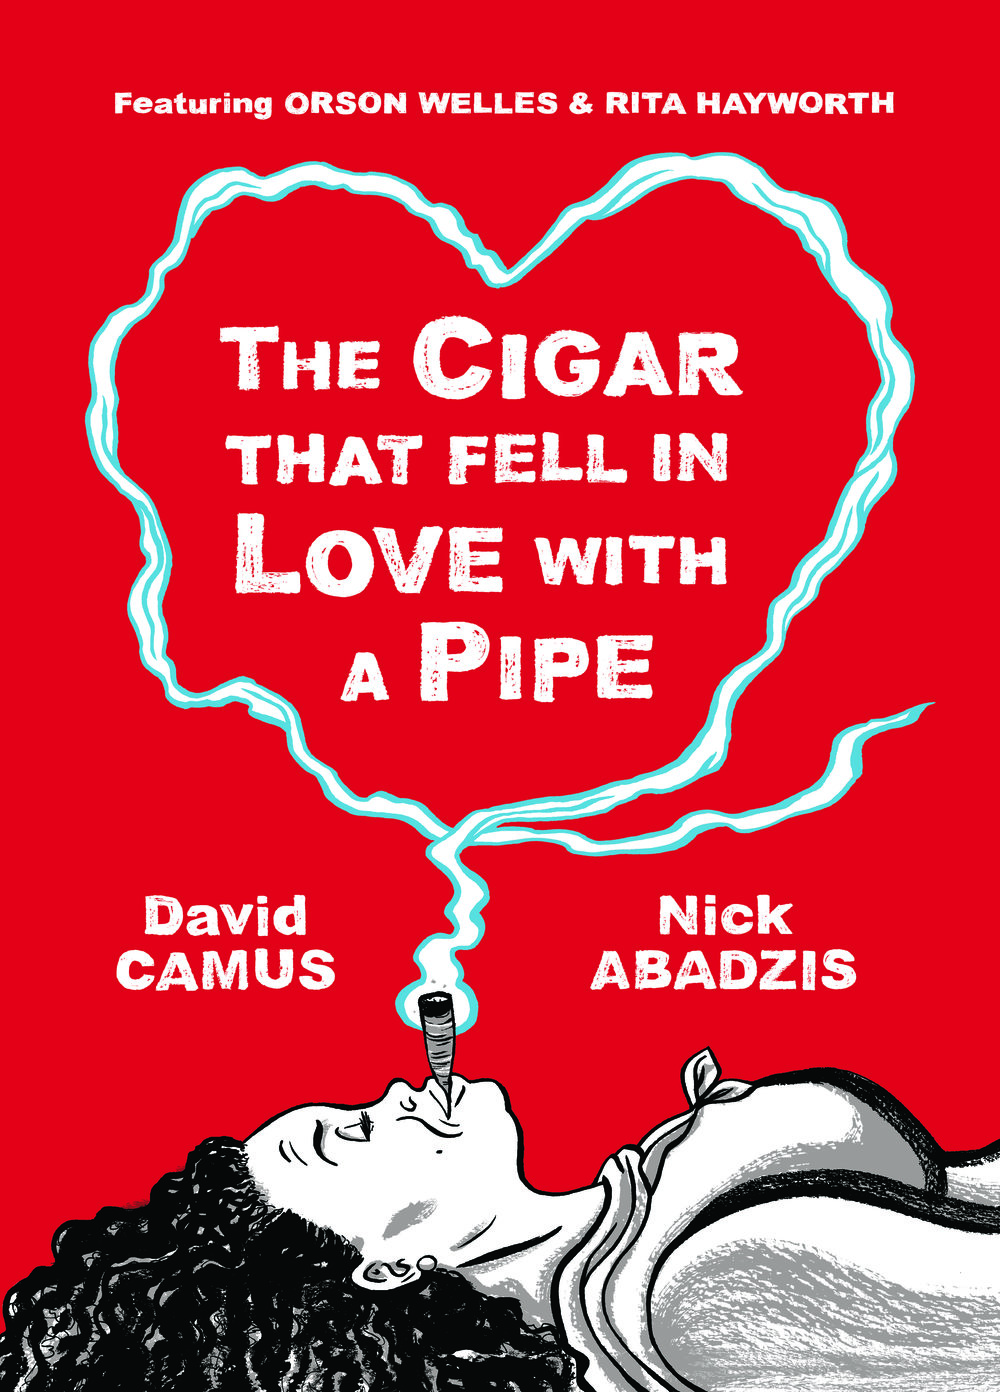 Cigar-that-fell-in-love-with-a-pipe